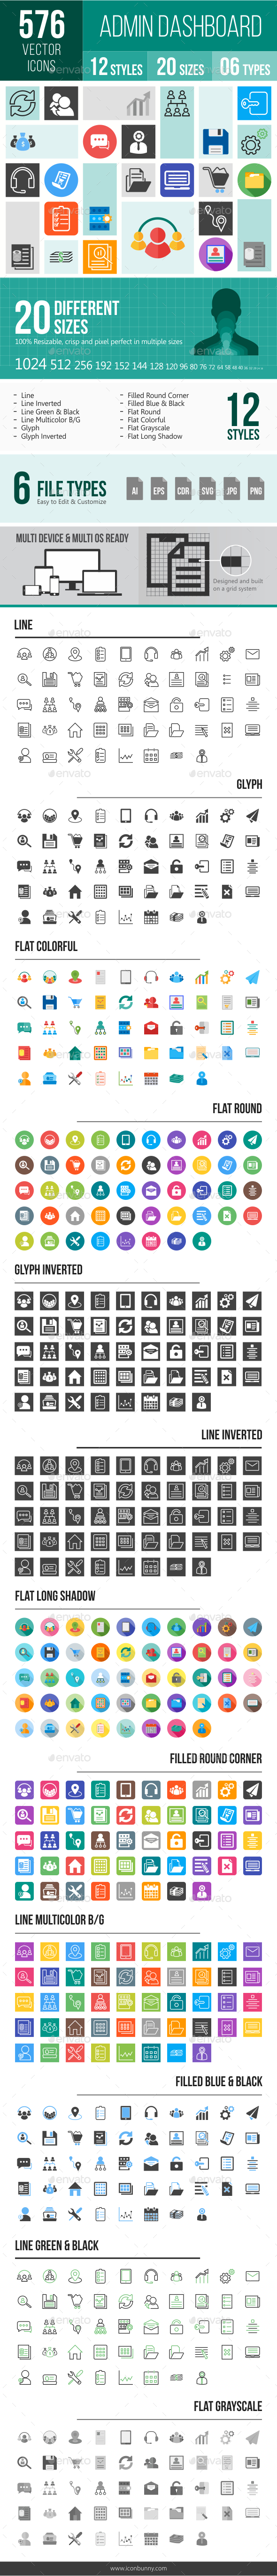 576 Admin Dashboard Icons - Icons